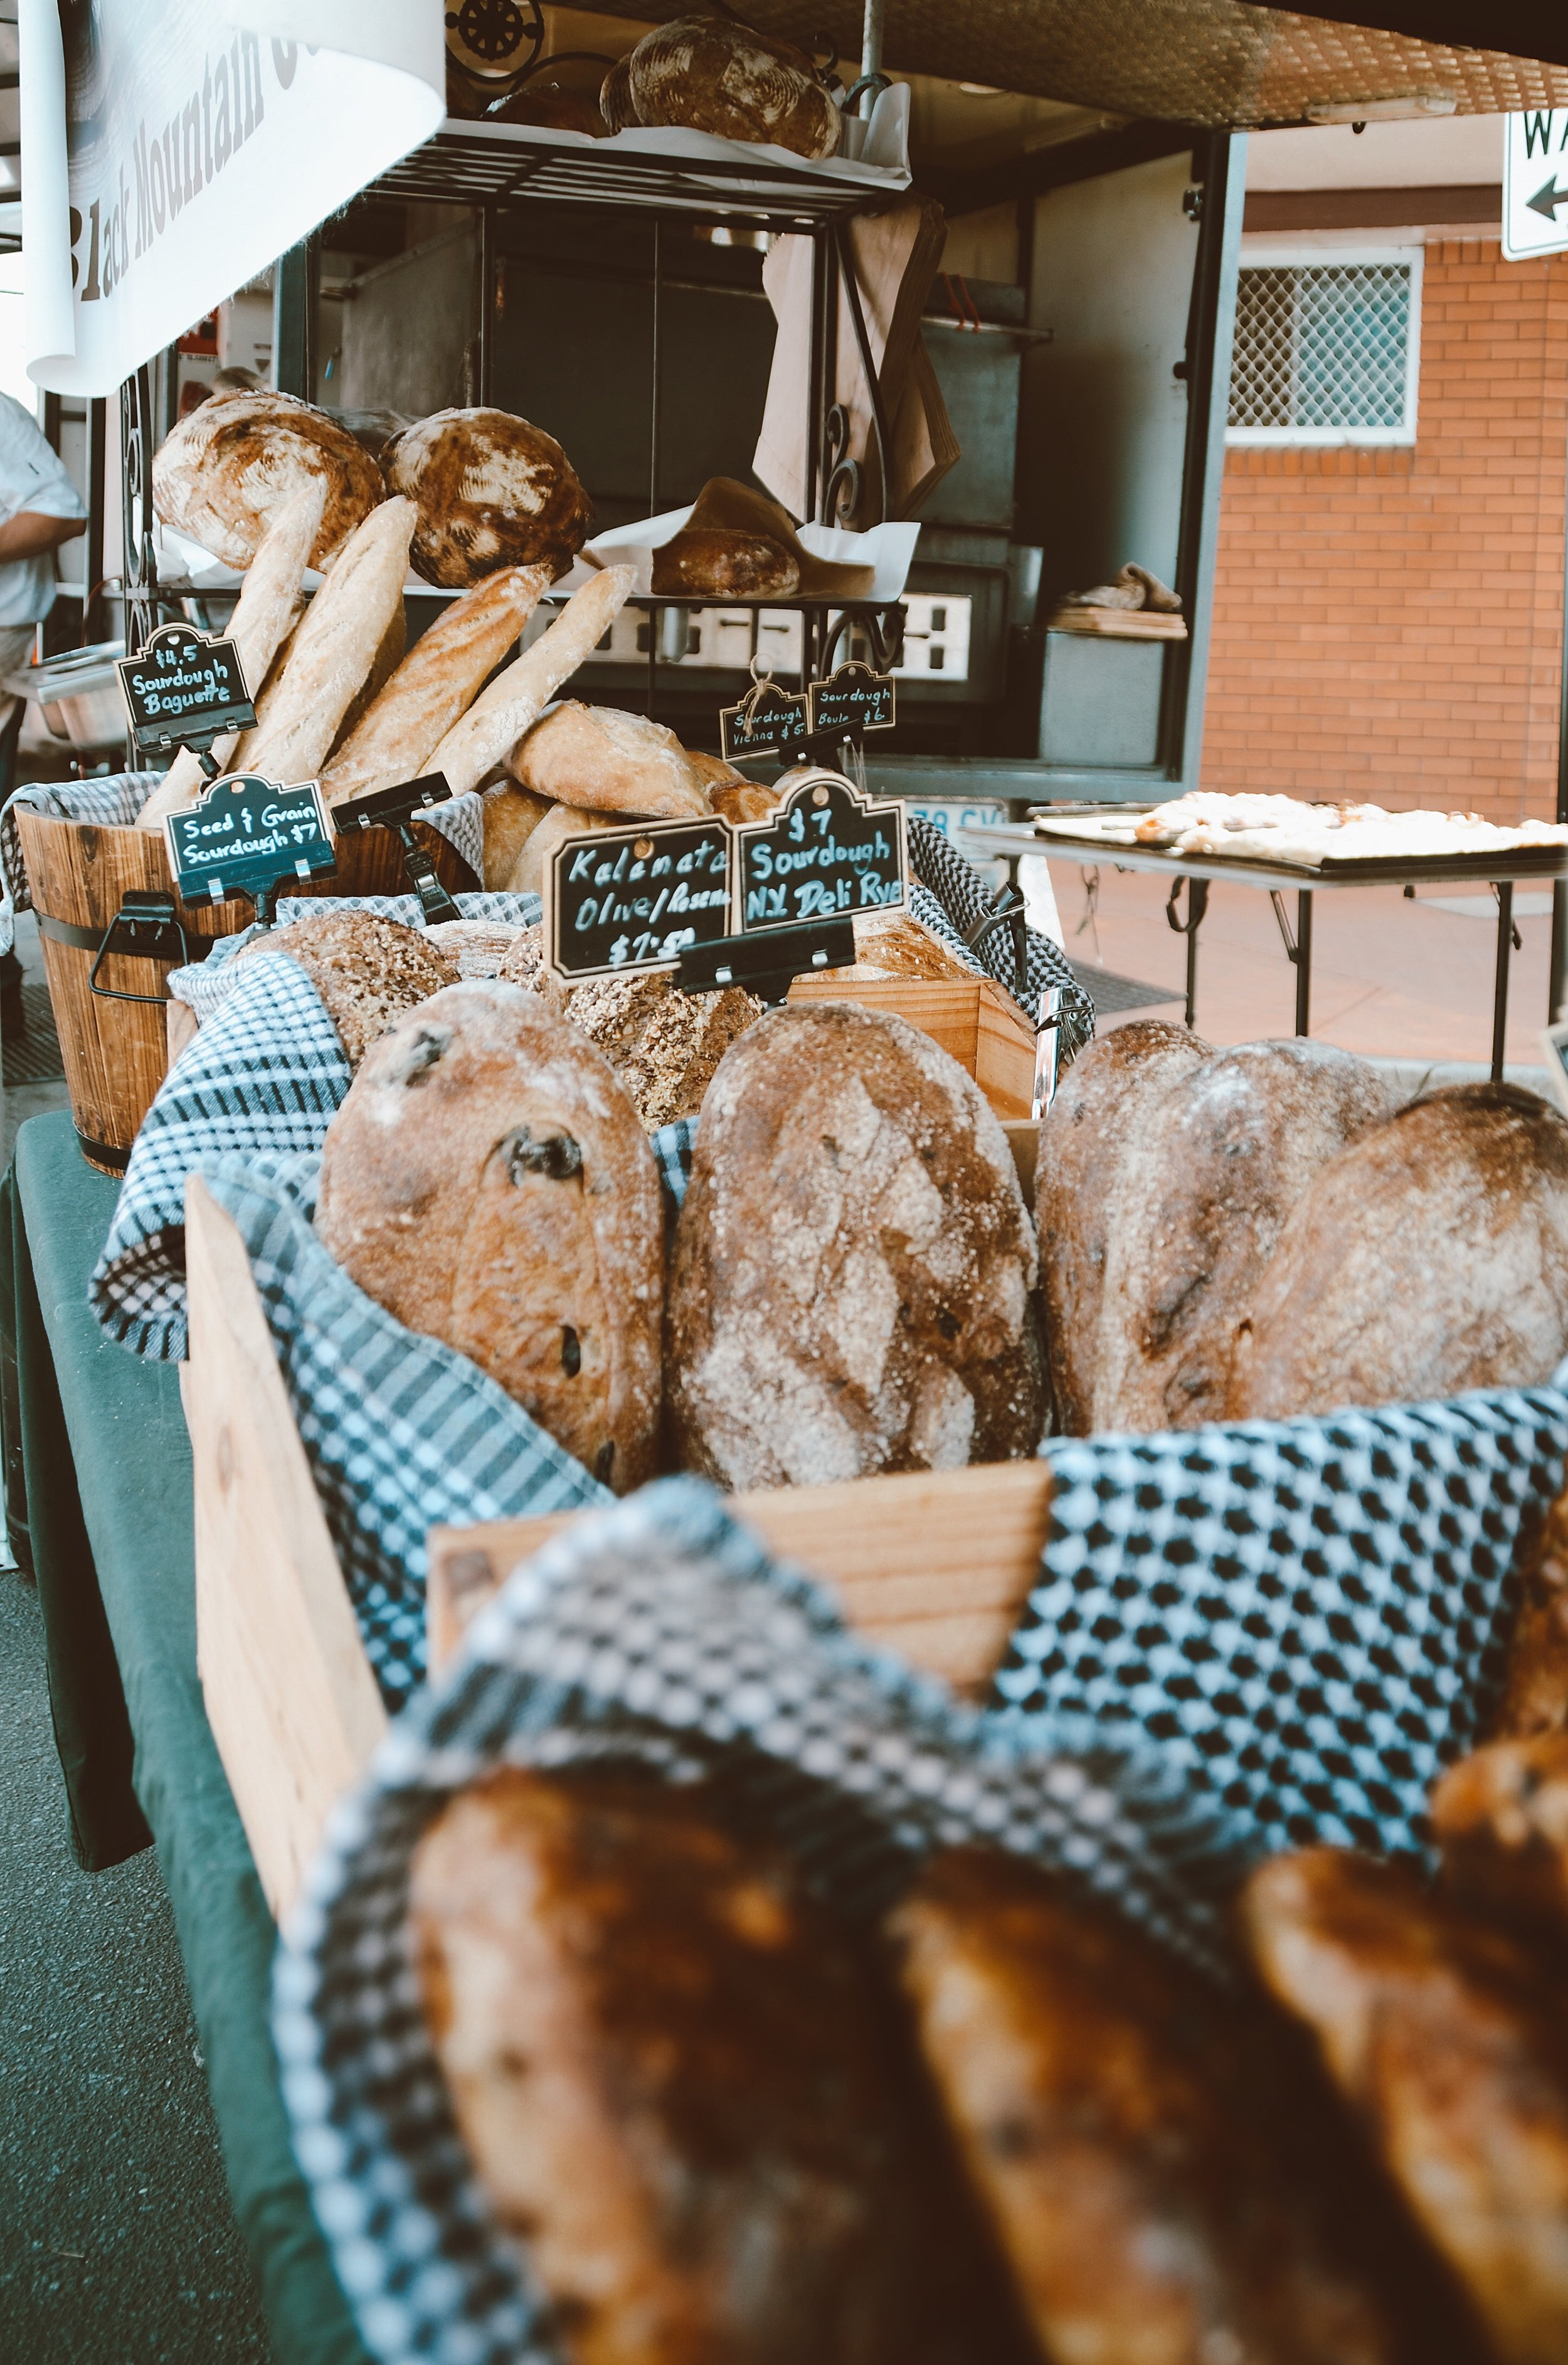 Breads at the Black Mountain Gourmet market stall